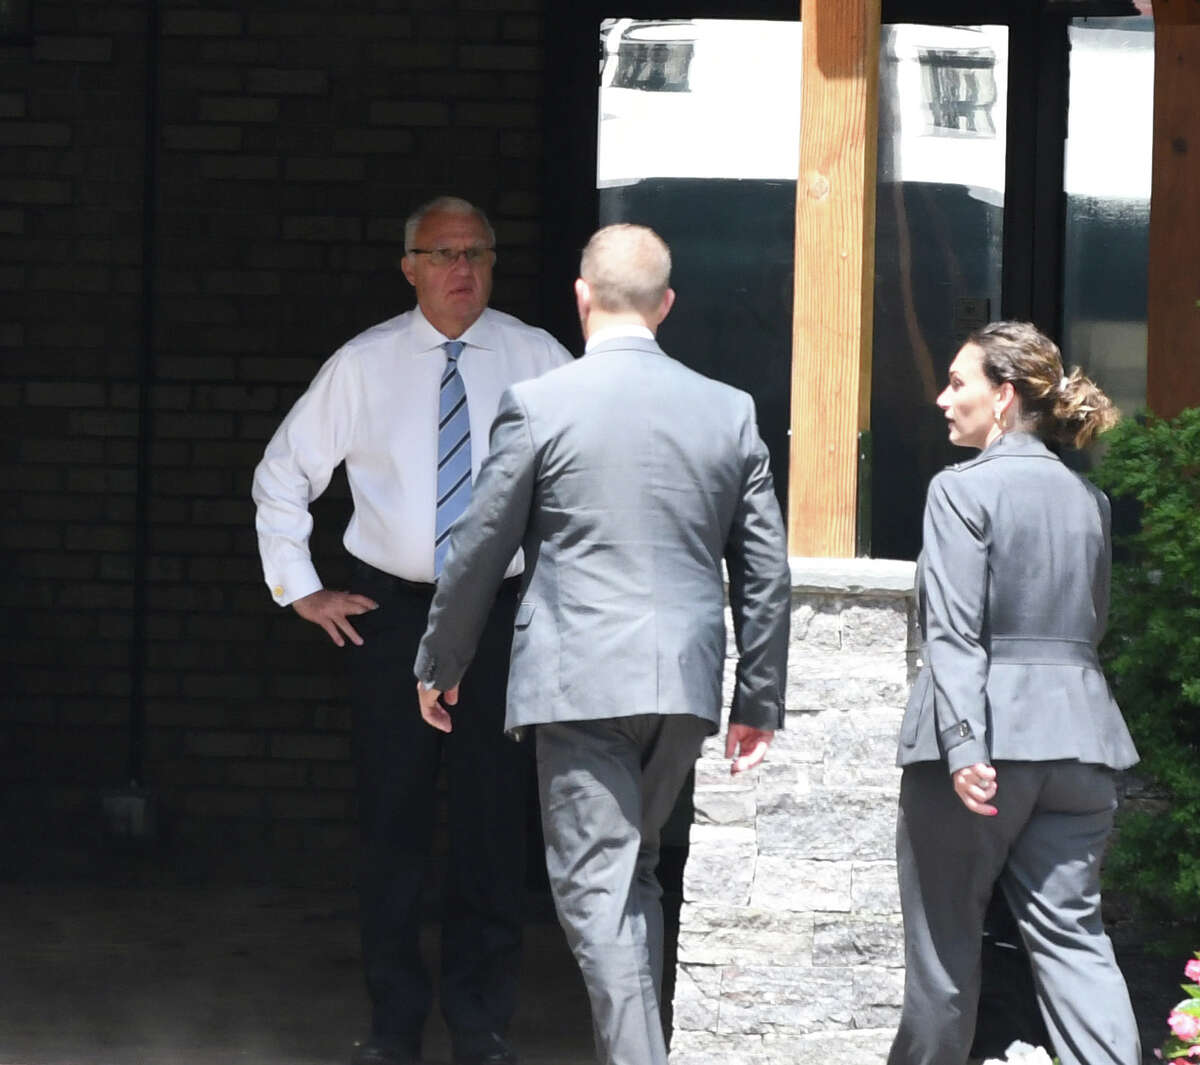 Ronald Riggi speaks with federal agents during a raid of his business, Turbine Services Ltd., on Tuesday, June 25, 2019, on Old Gick Road in Wilton, N.Y. Agents and members of the U.S. Department of Homeland Security and Commerce Department arrived at the facility at 9 a.m. (Will Waldron/Times Union)